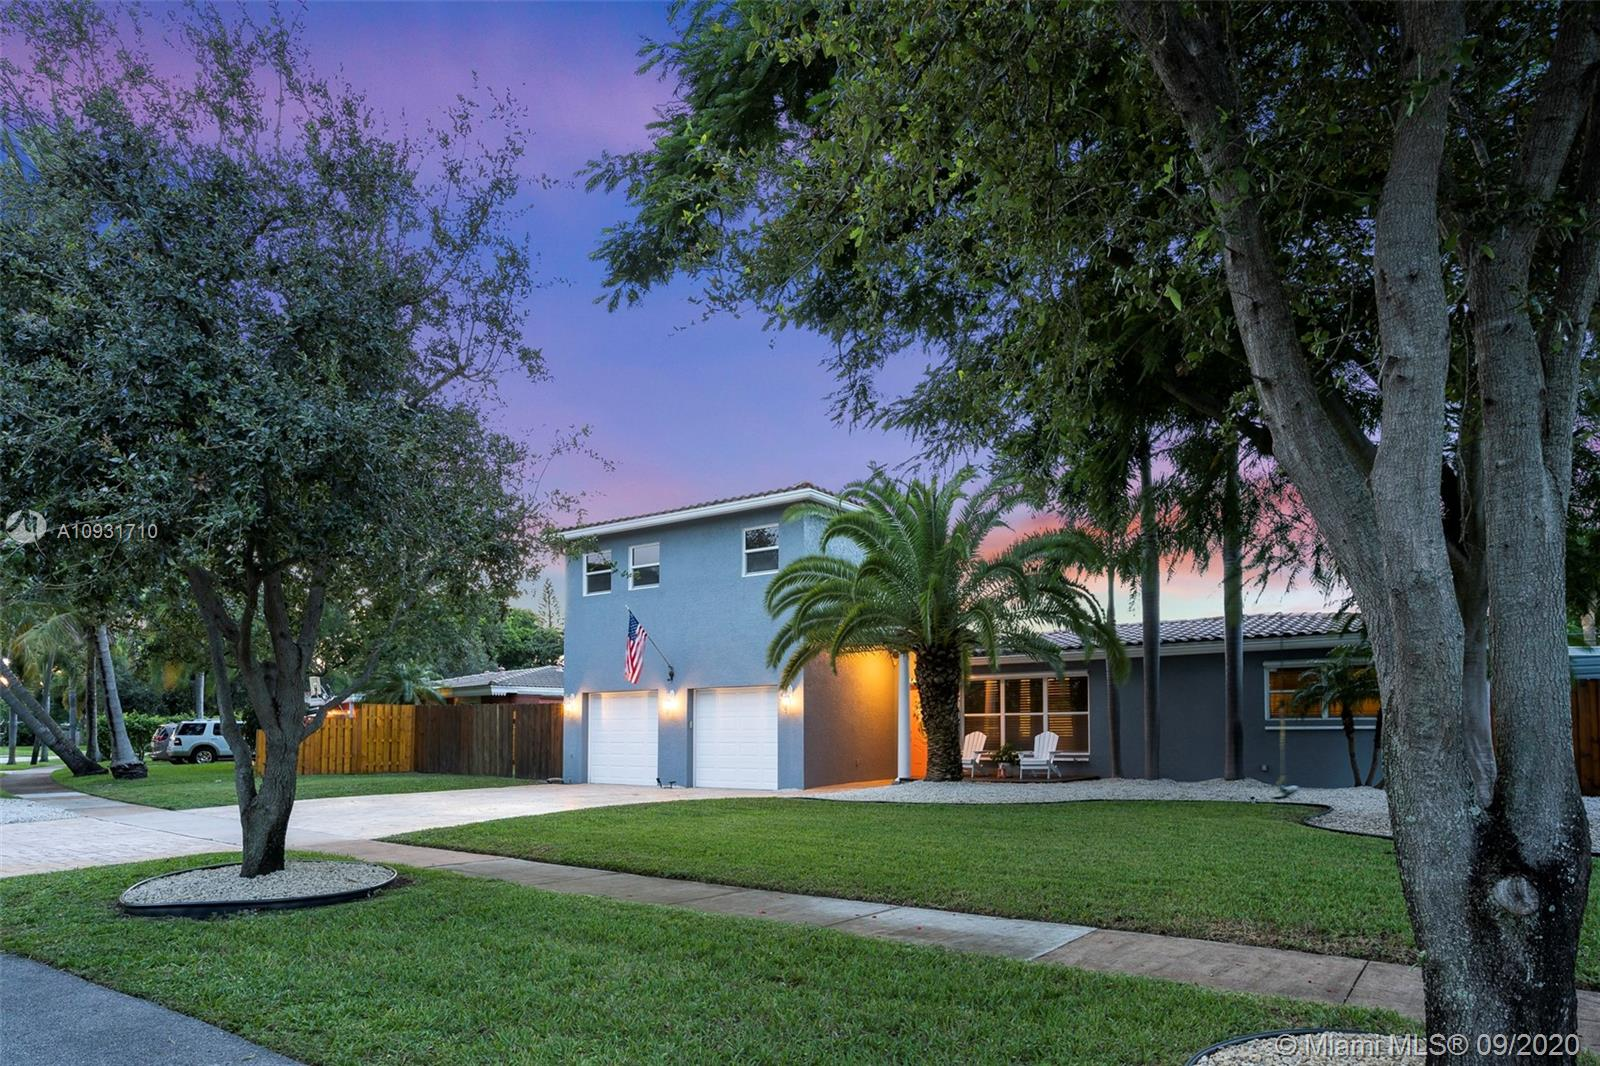 329 SW 14th St, Pompano Beach, Florida 33060, 3 Bedrooms Bedrooms, ,2 BathroomsBathrooms,Residential,For Sale,329 SW 14th St,A10931710